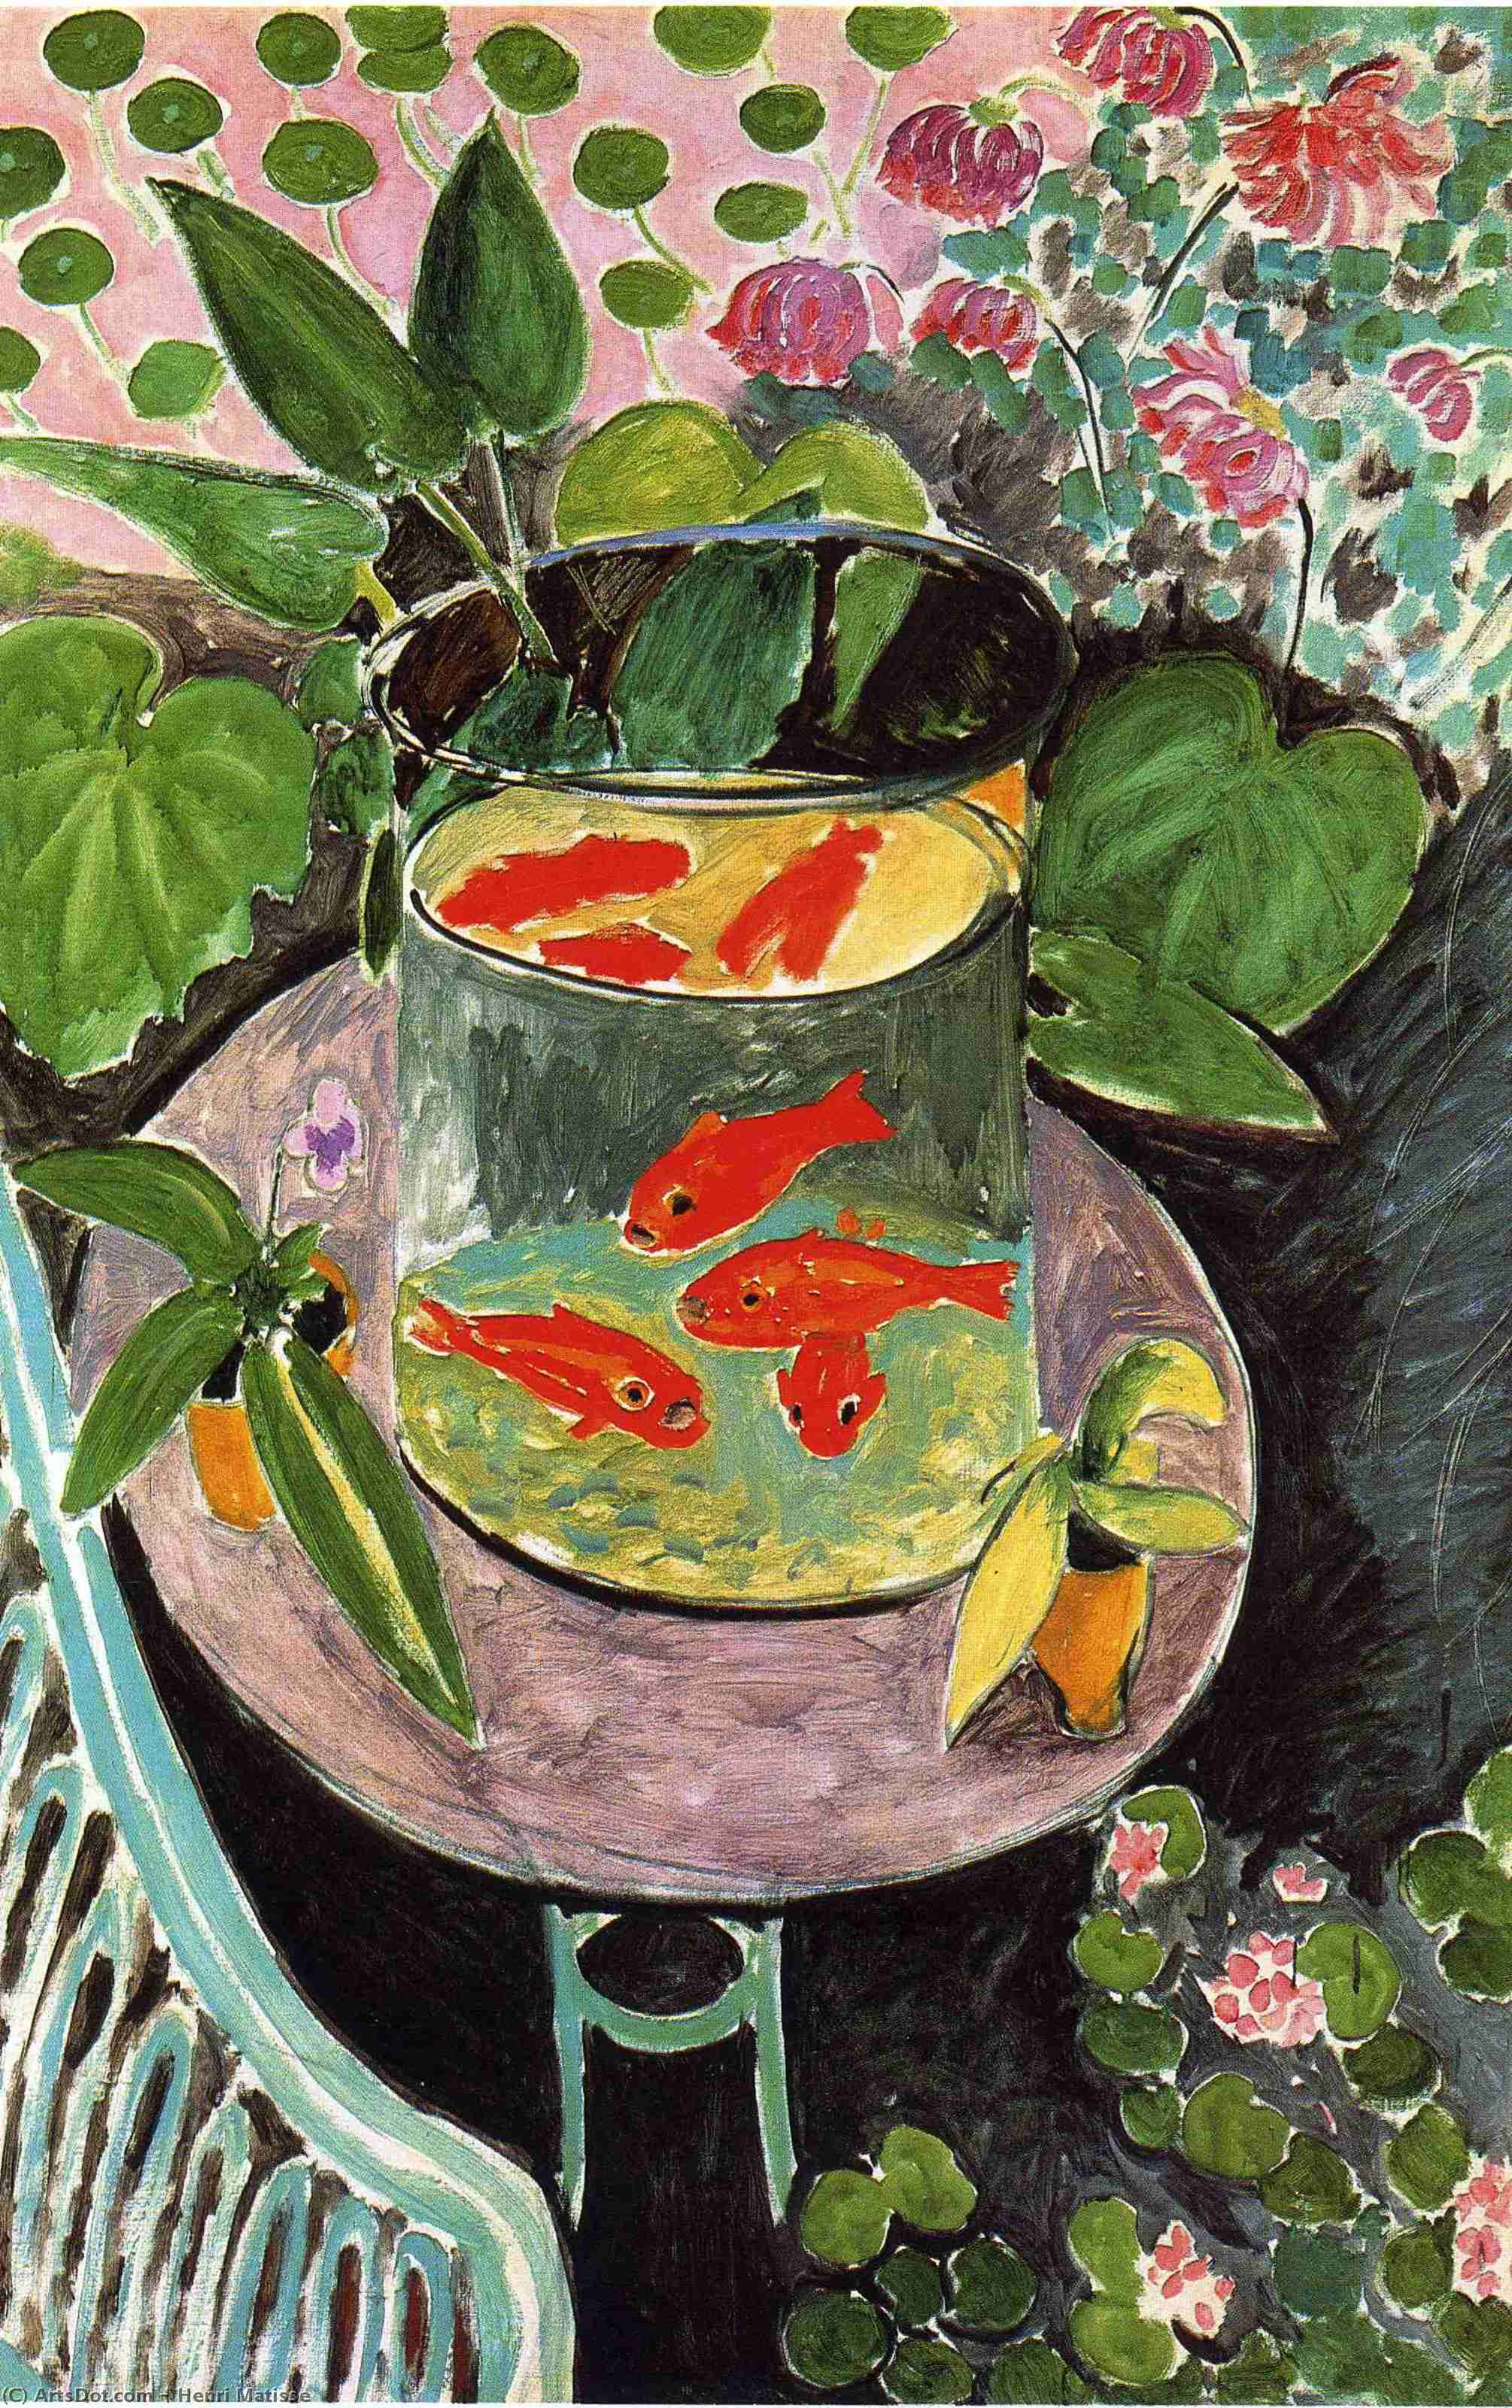 Wikioo.org - The Encyclopedia of Fine Arts - Painting, Artwork by Henri Matisse - Goldfish